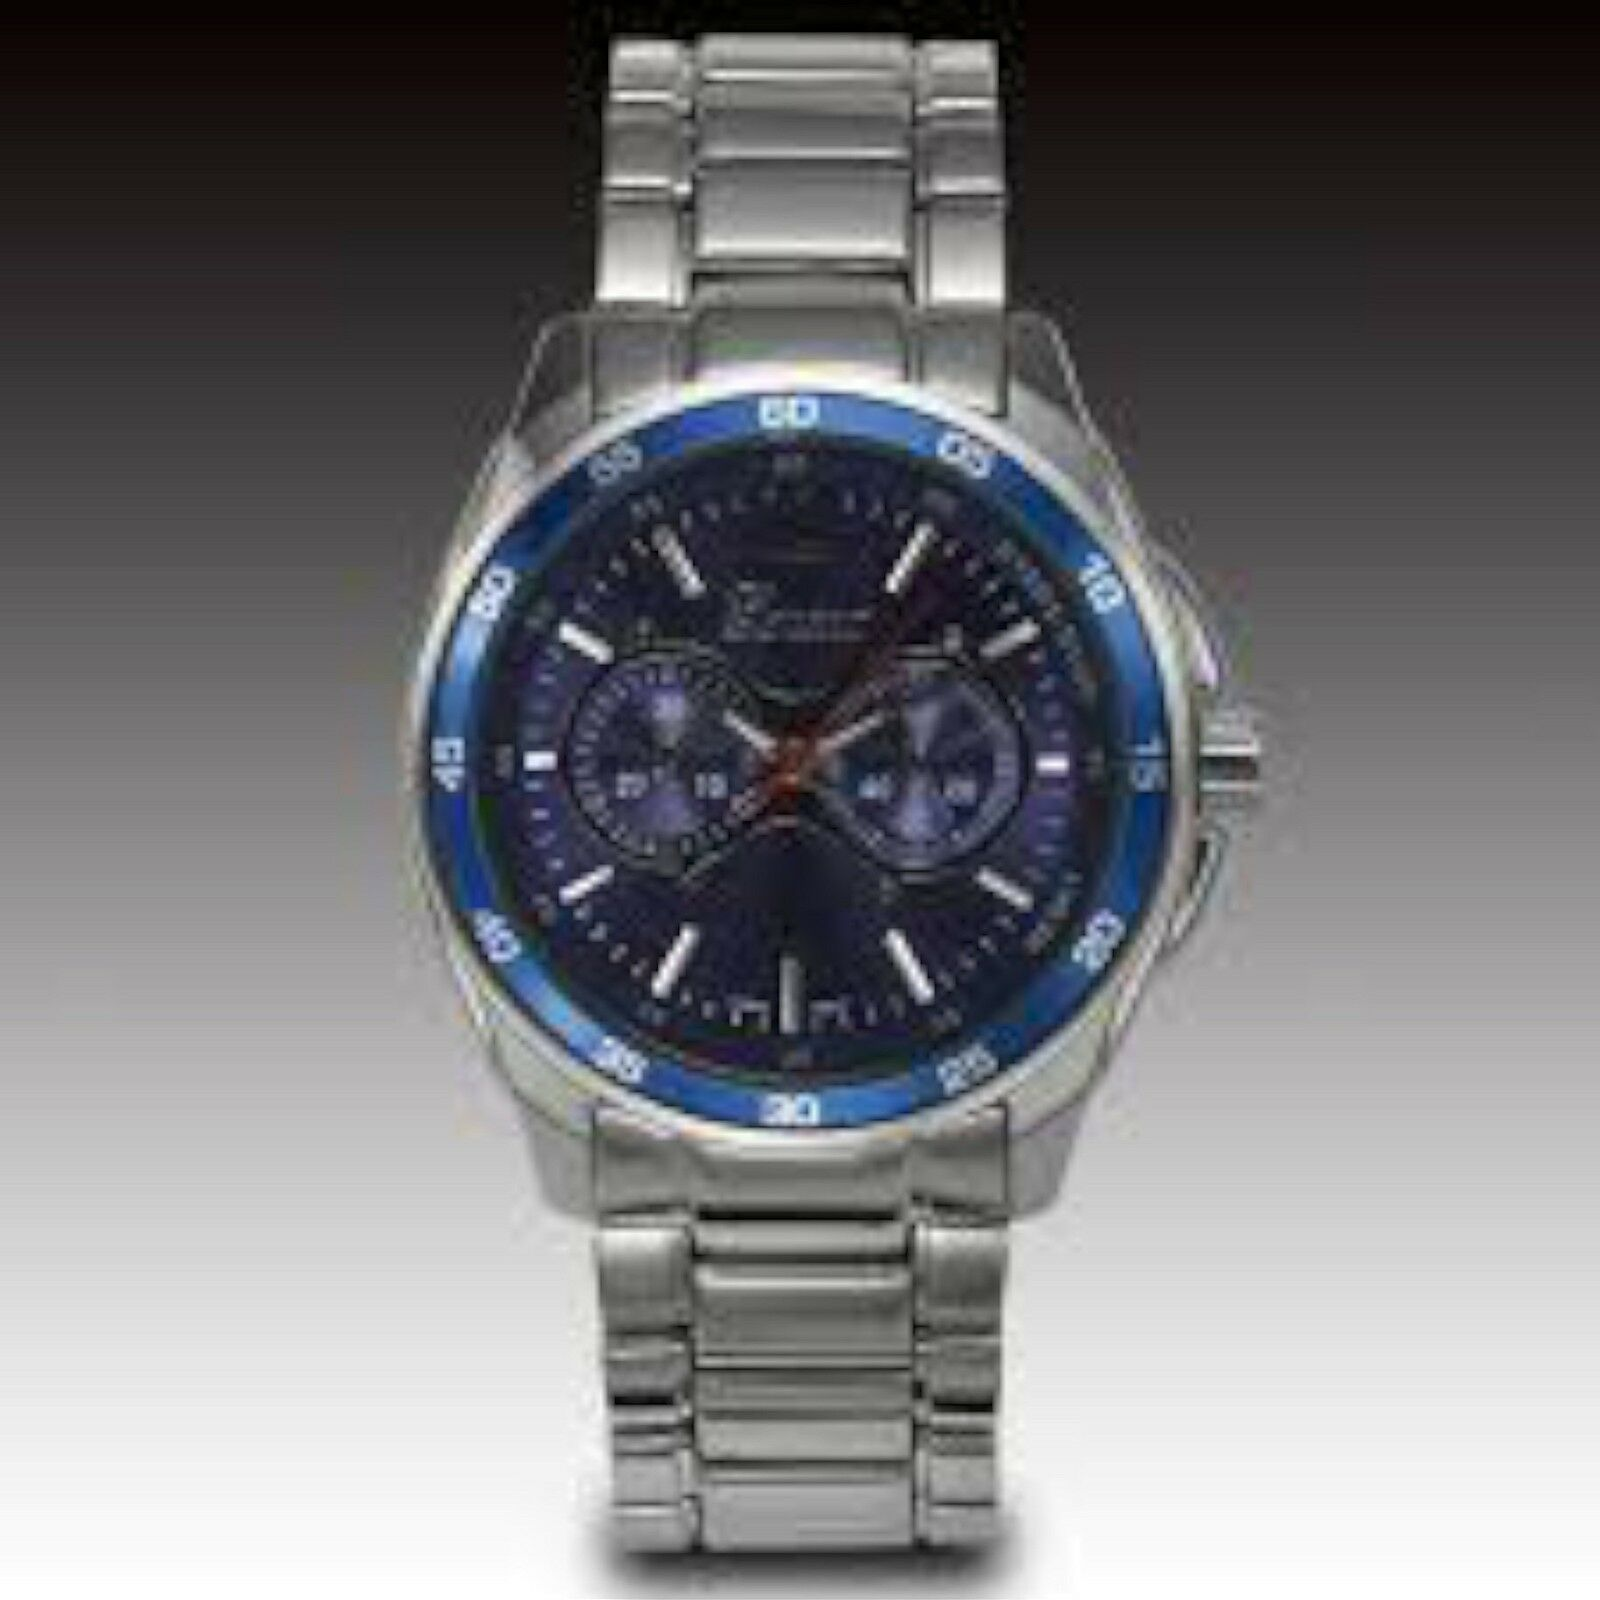 com chronograph watchshop ordering watch looks a nate manly on fossil watches system price stunning that delivery mens gents lovely and great quality